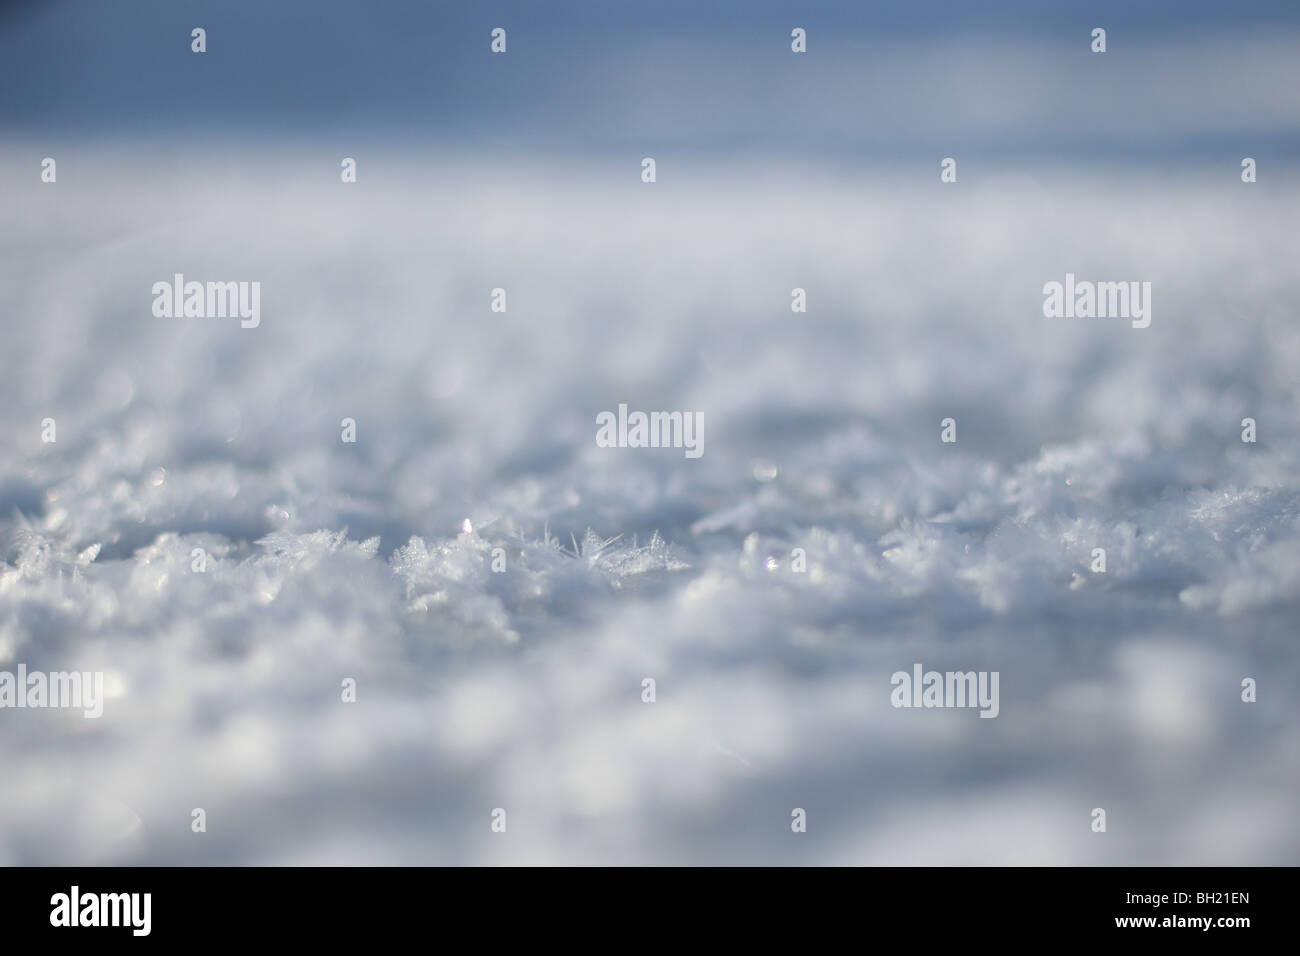 A close up of ice crystals on the surface of a creek. - Stock Image